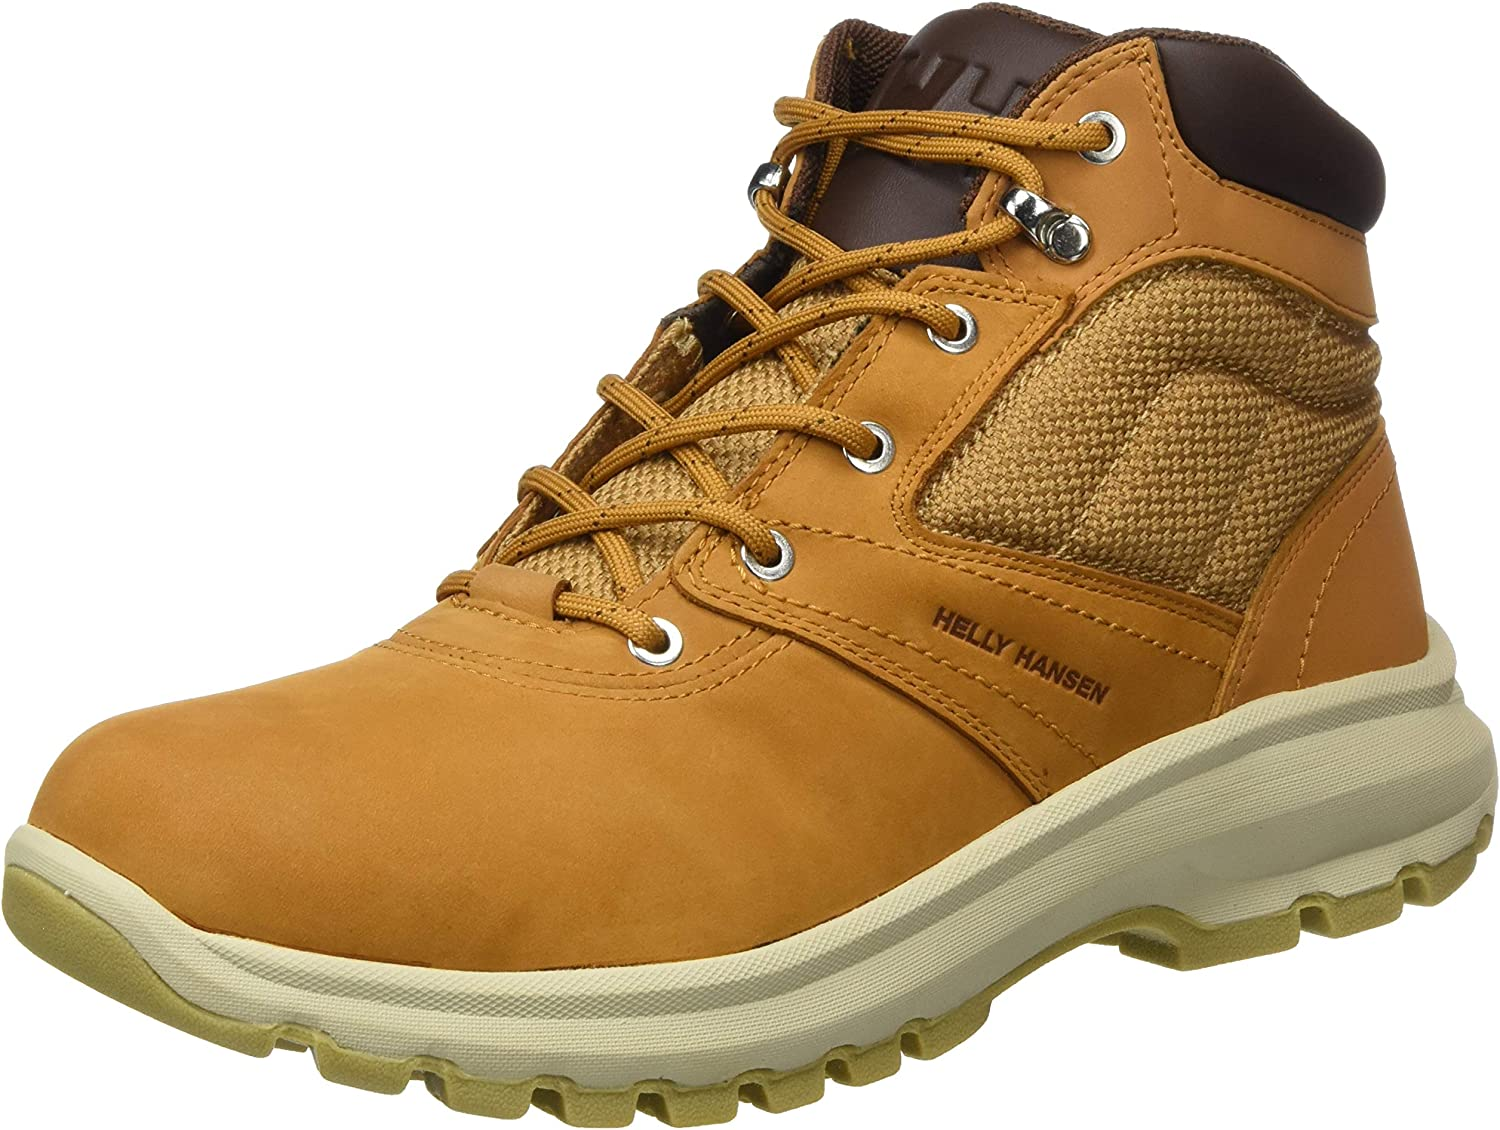 Helly-Hansen Womens High Rise Hiking Boots